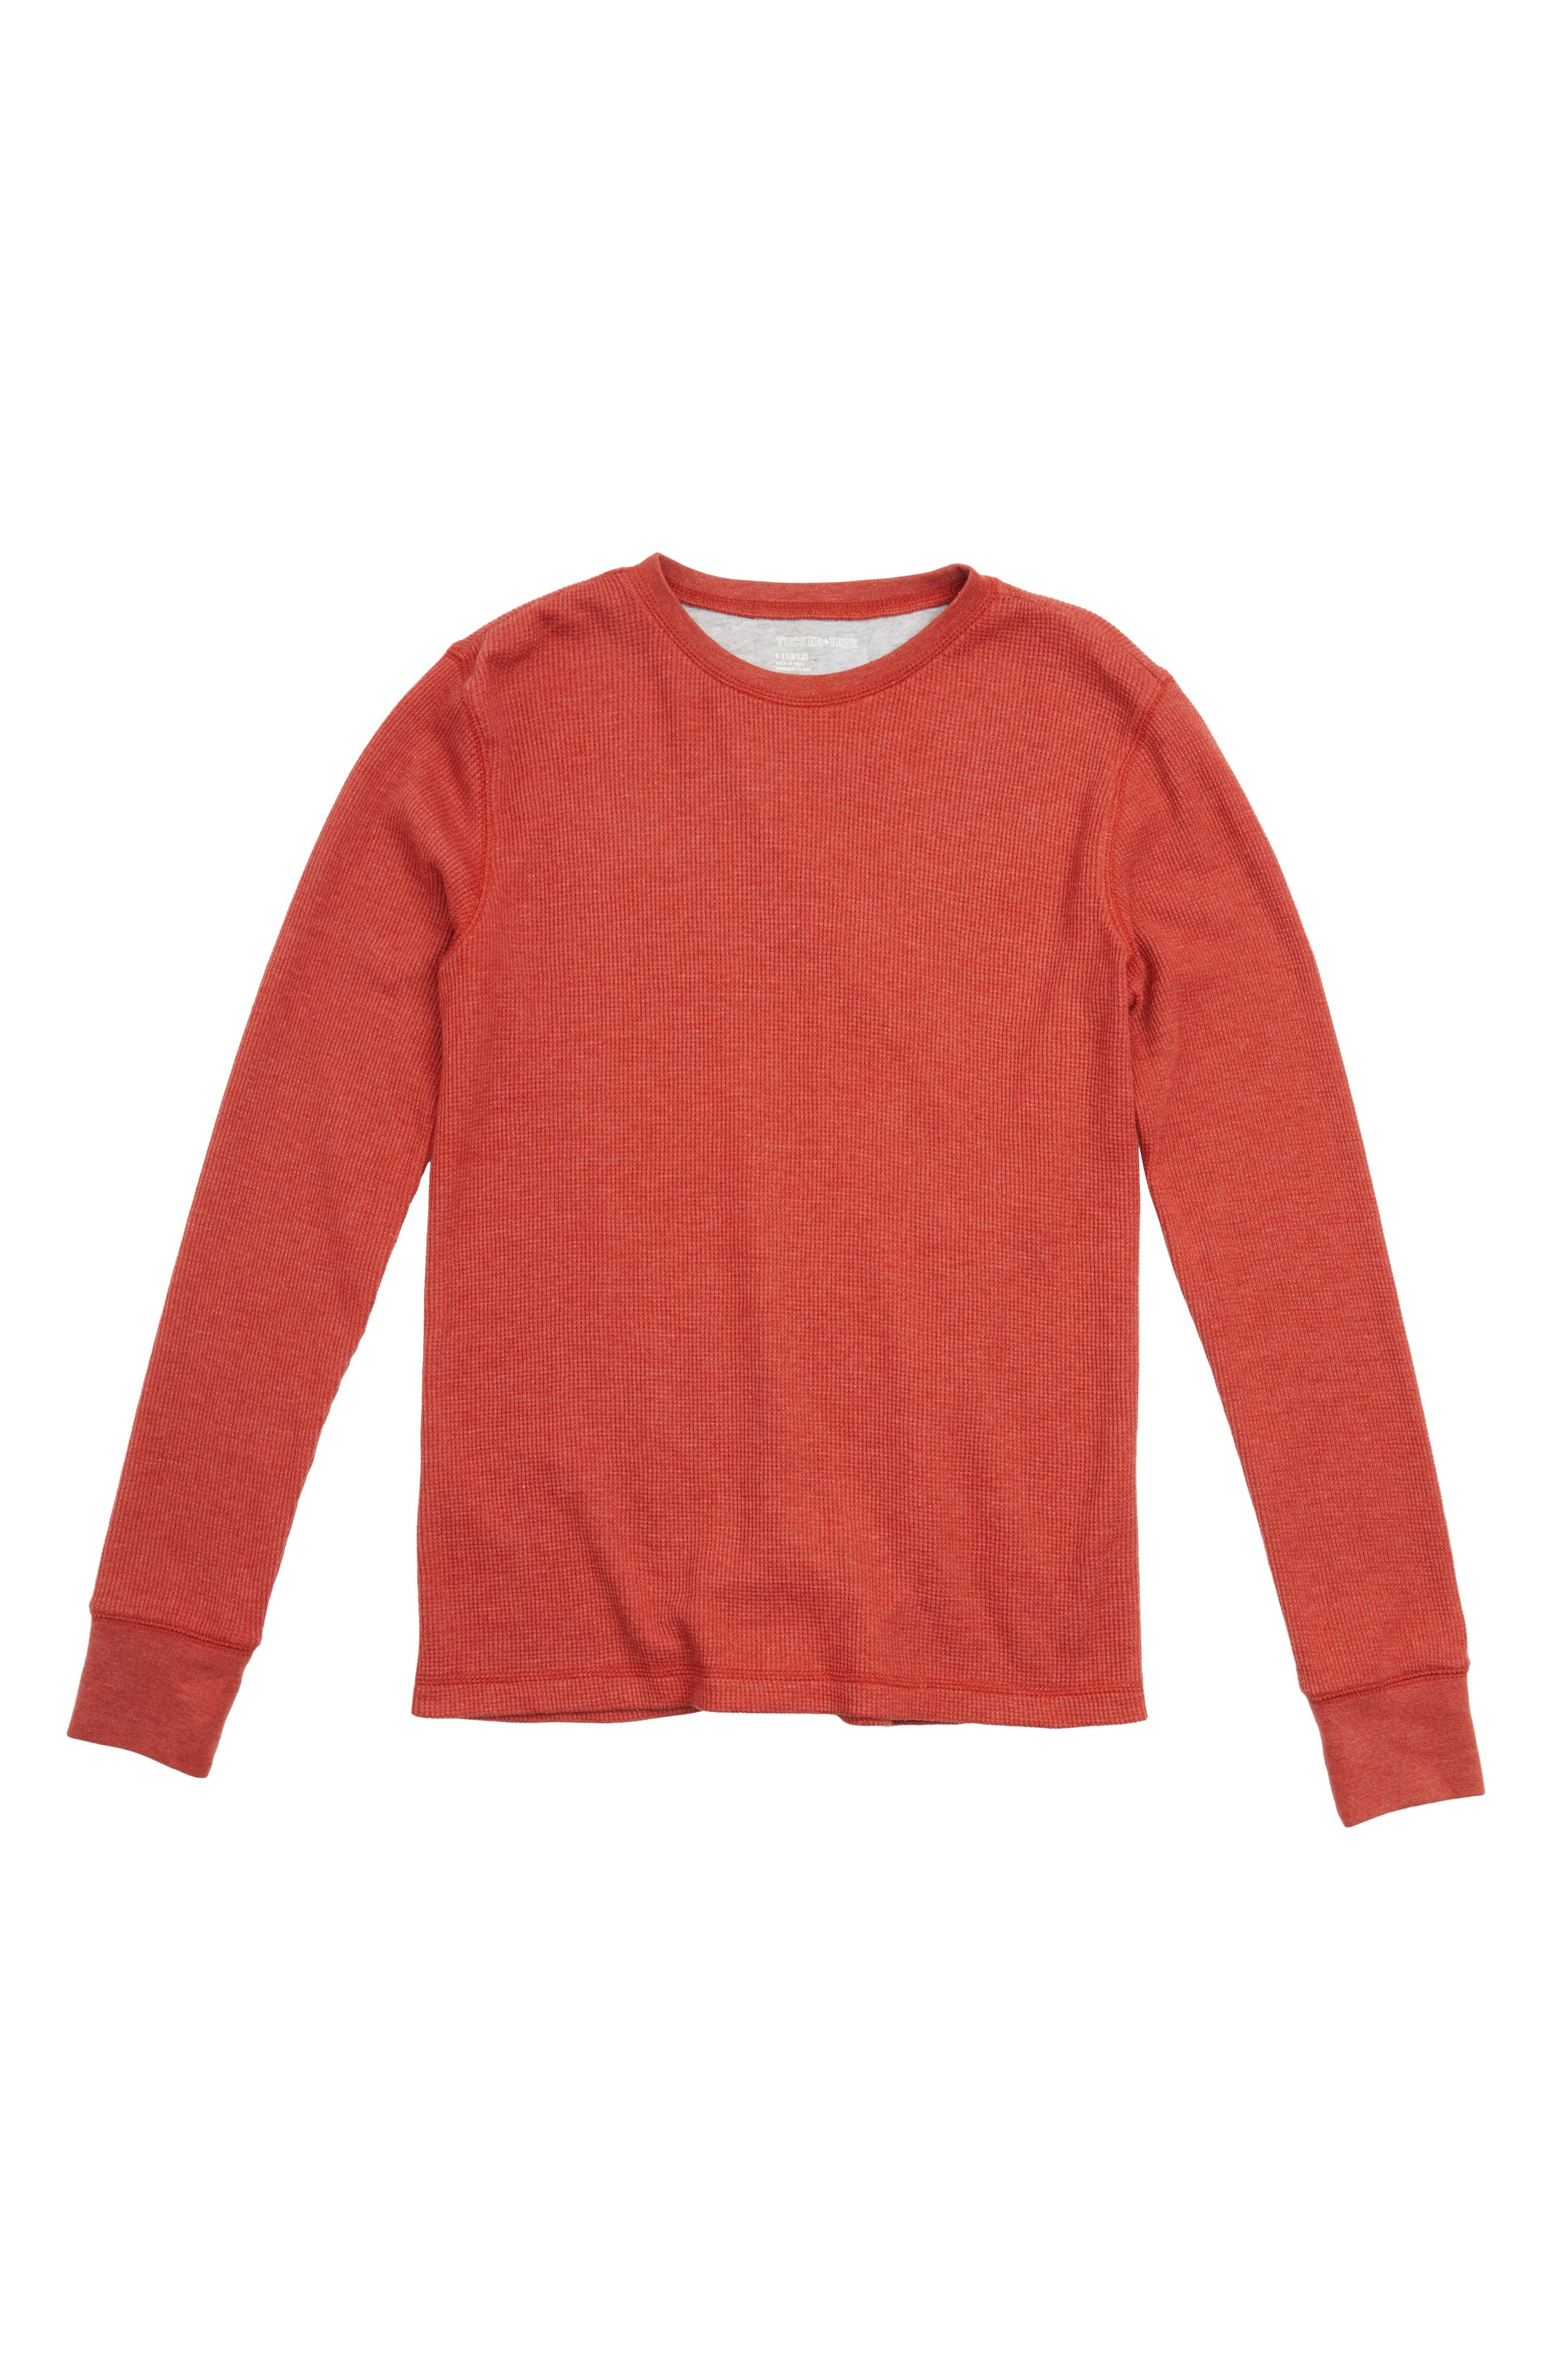 TUCKER + TATE Long Sleeve Thermal T-Shirt